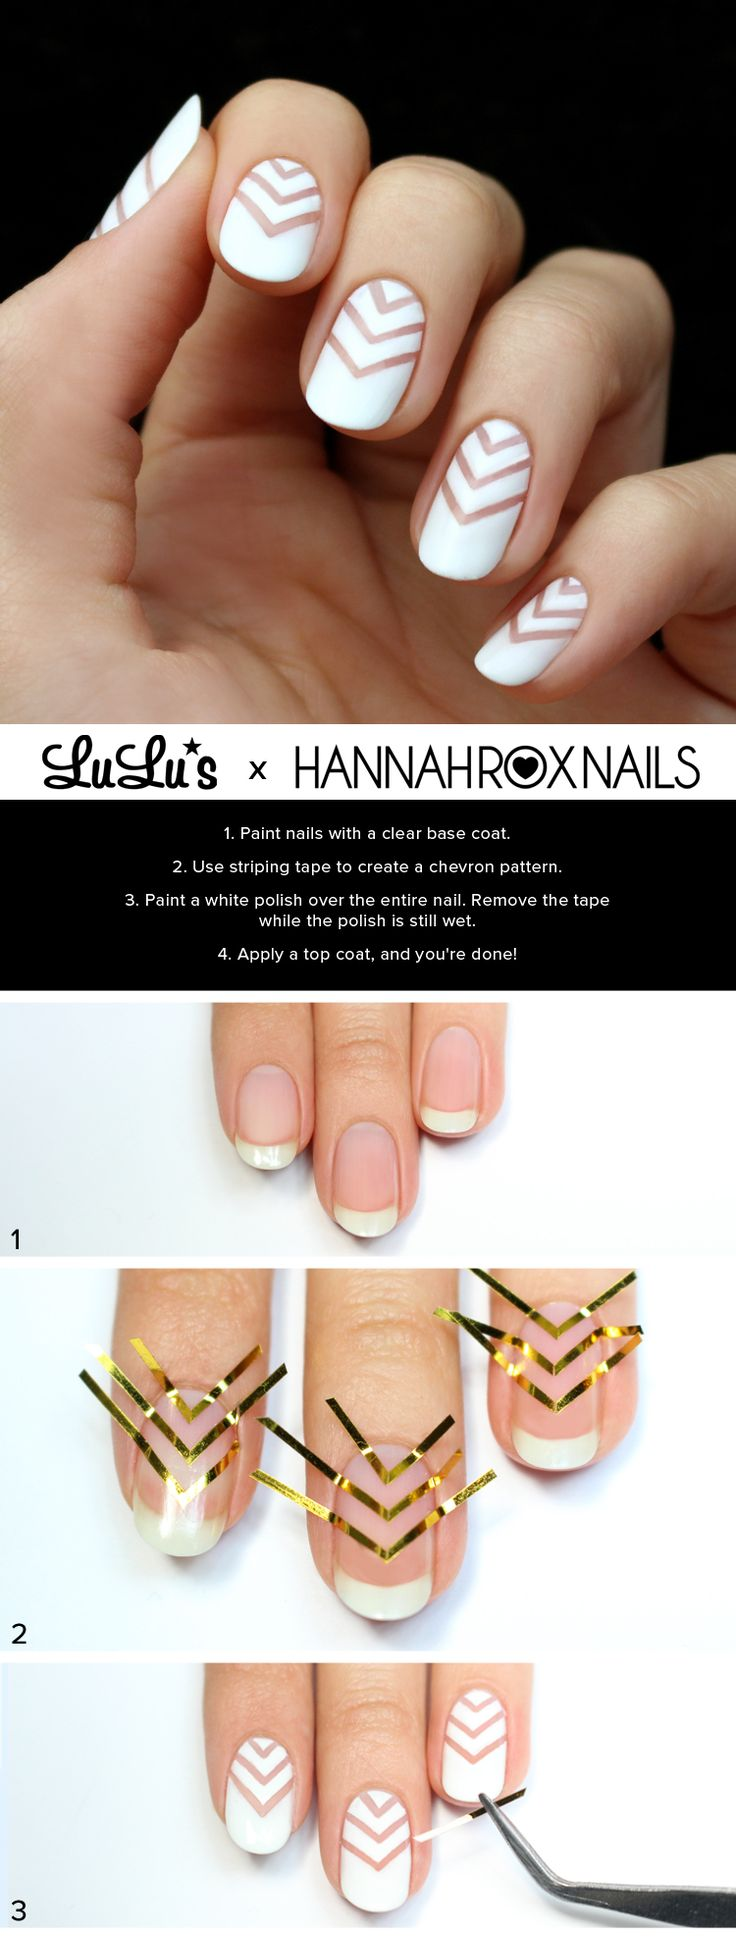 Our White Chevron Negative Space Nail Tutorial takes that chic, white mani that you love, and freshens it up with a cool negative space design!